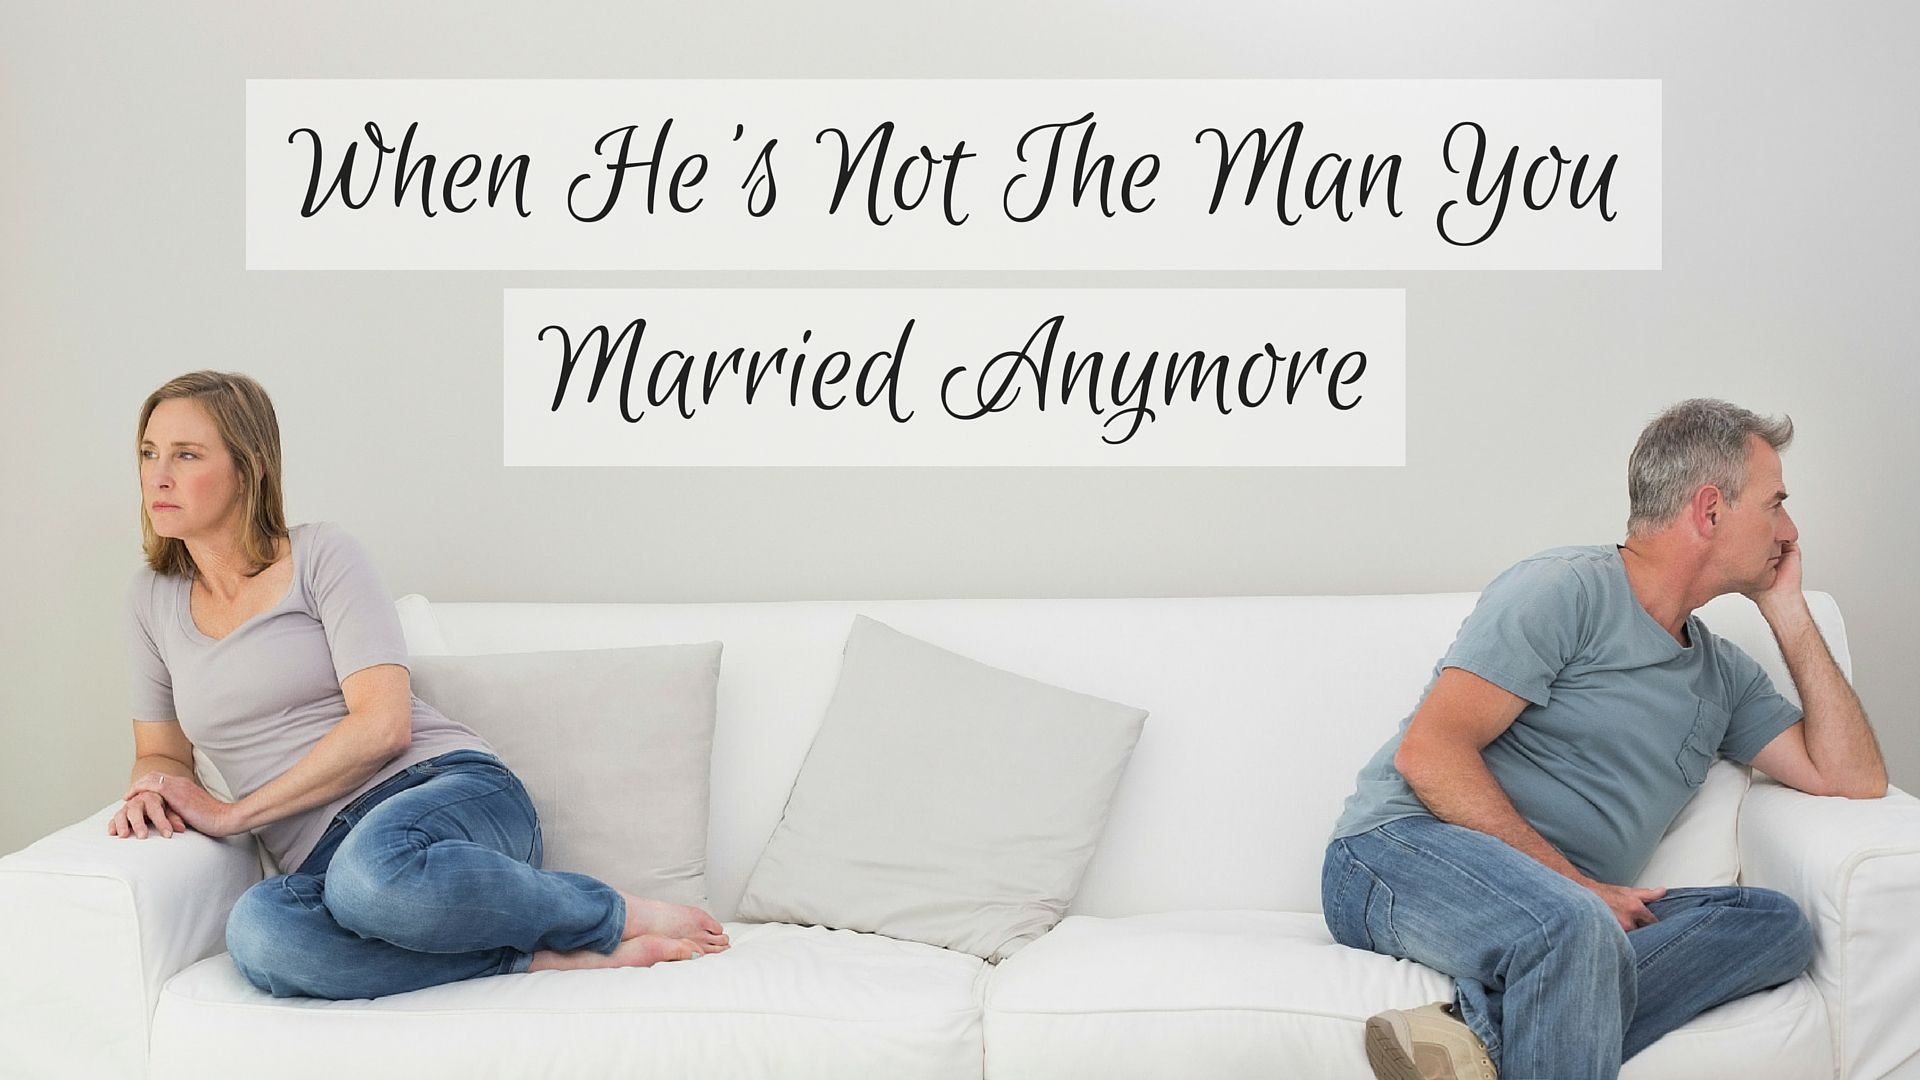 What if he's not the same man that you married? Here's how to cope.